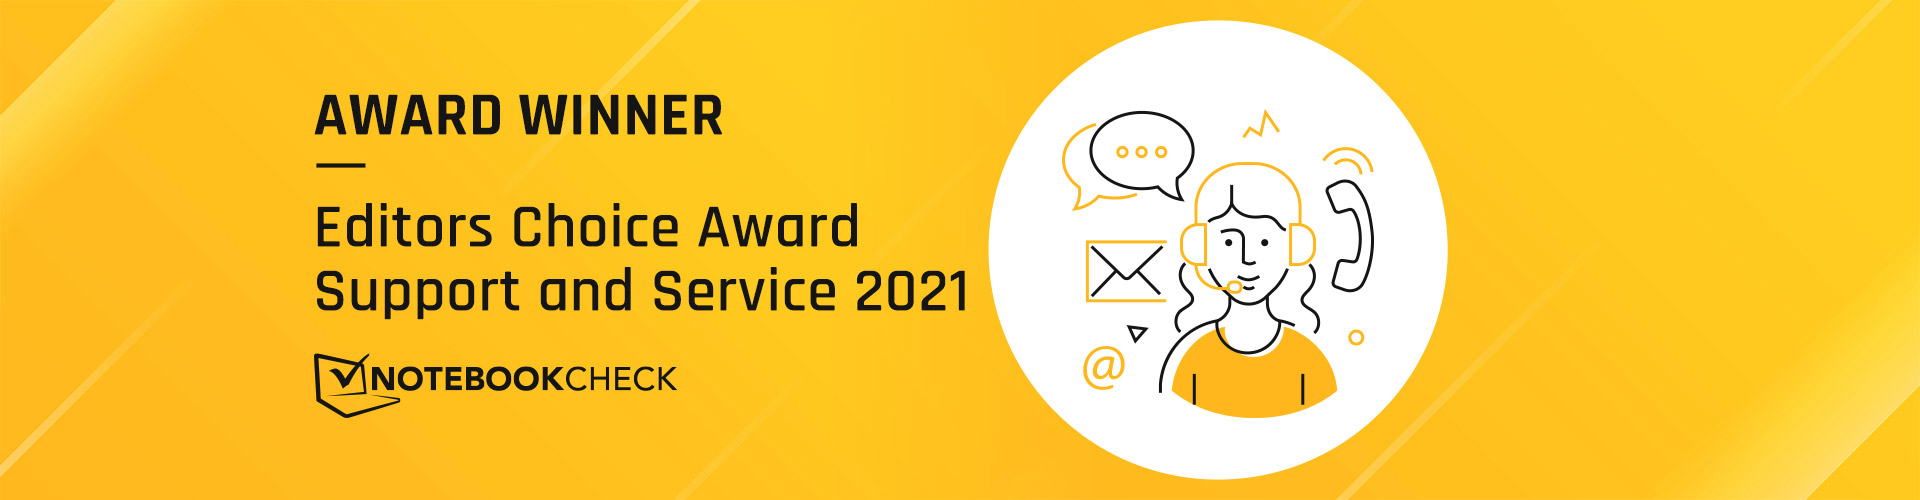 Notebookcheck award for highest customer satisfaction 2021